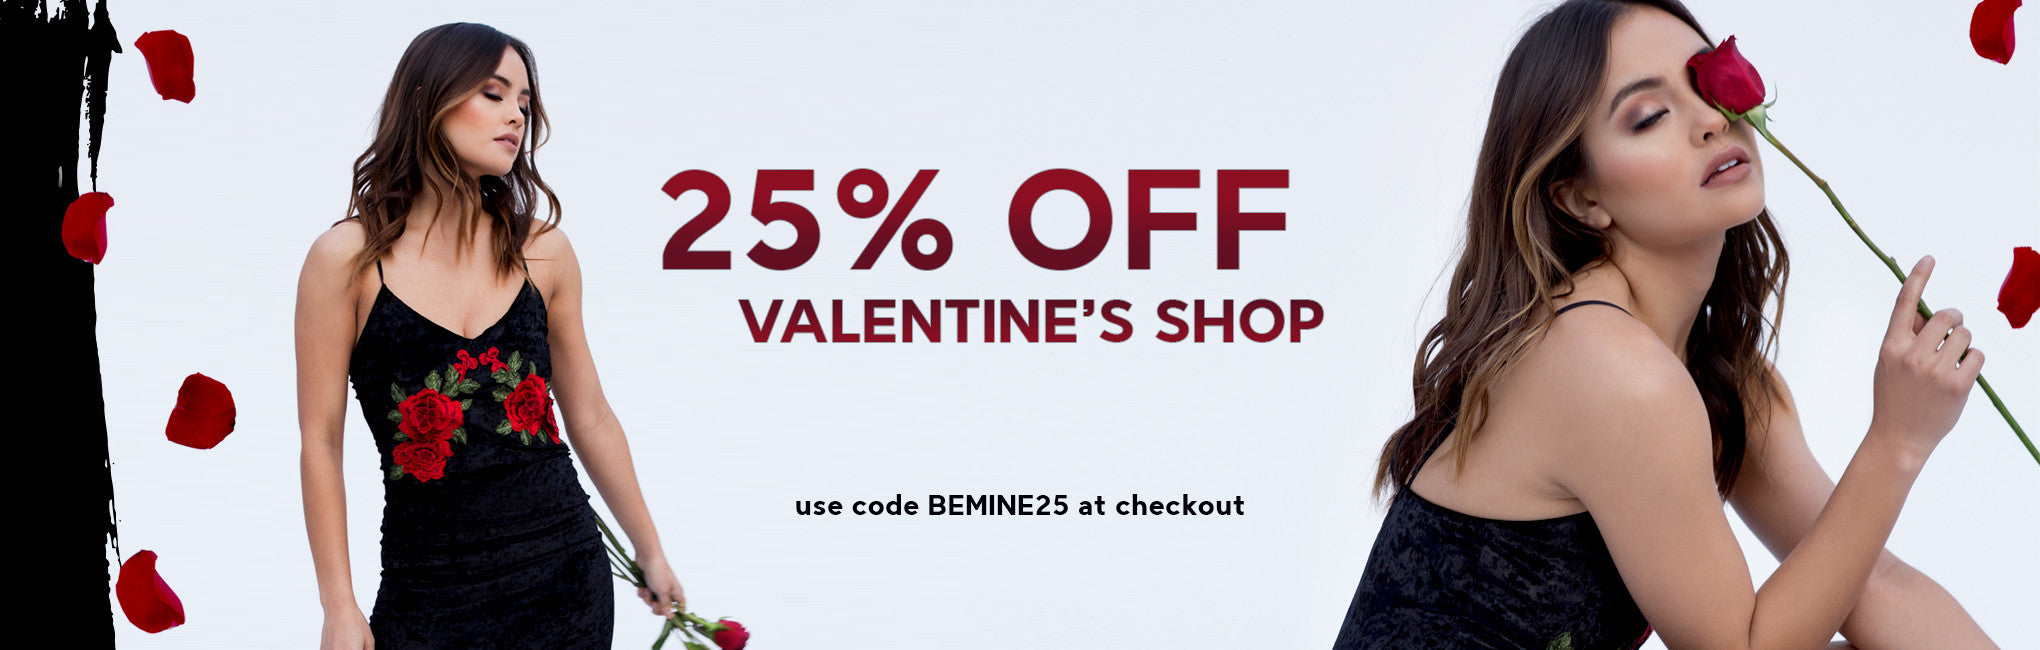 Angl Valentine's Day Shop Sale Promo Code